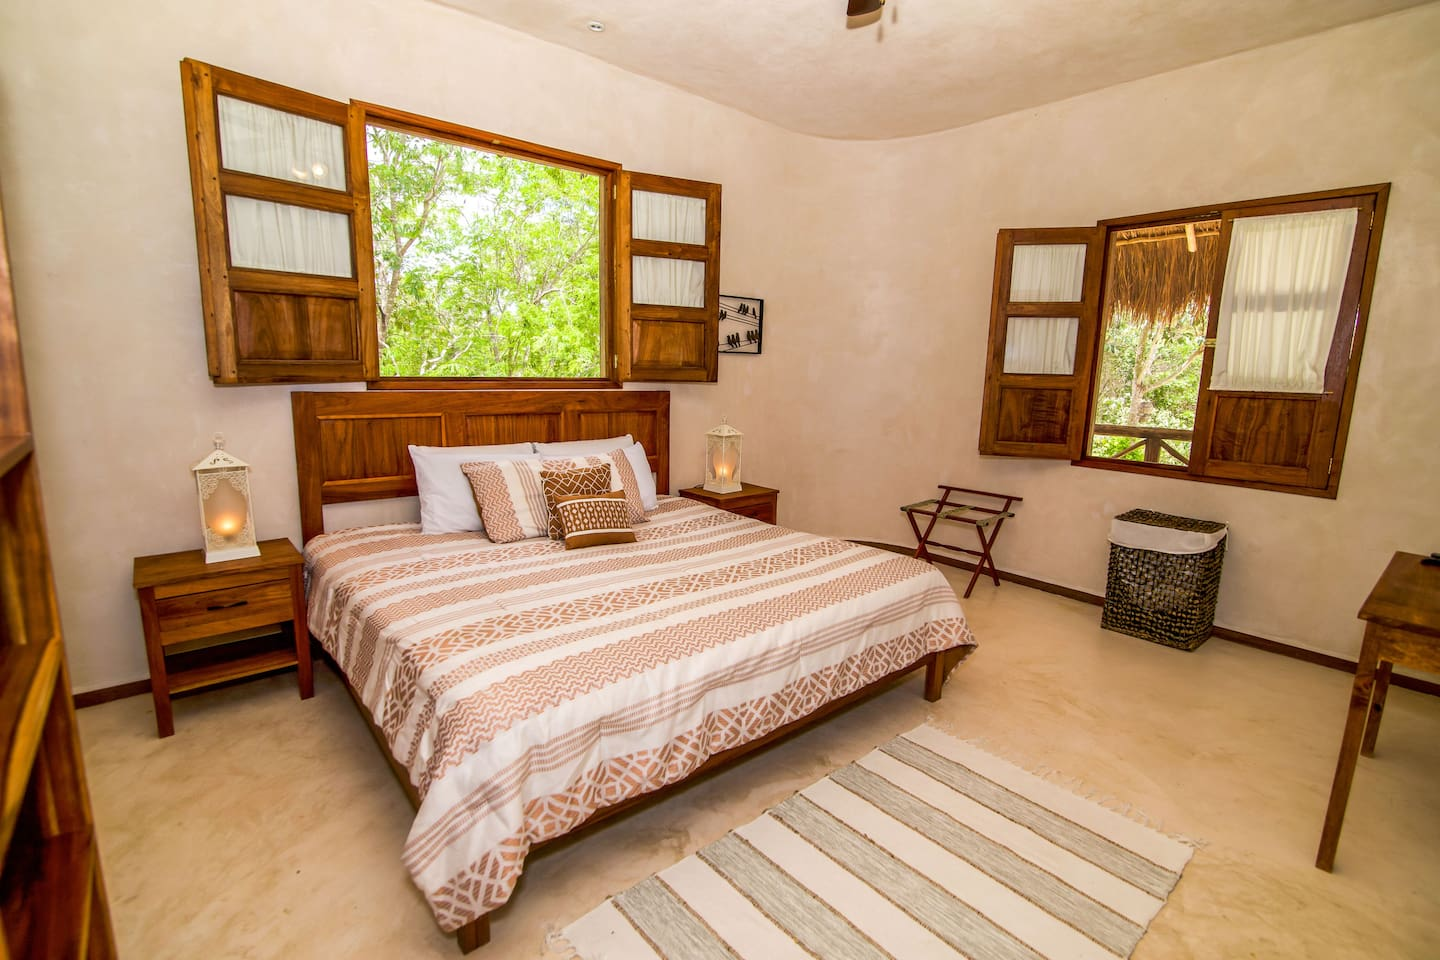 King Size bed / 4 pillows / A/C / SmartTV/ Full bathroom / Desk / Beautiful views to the property